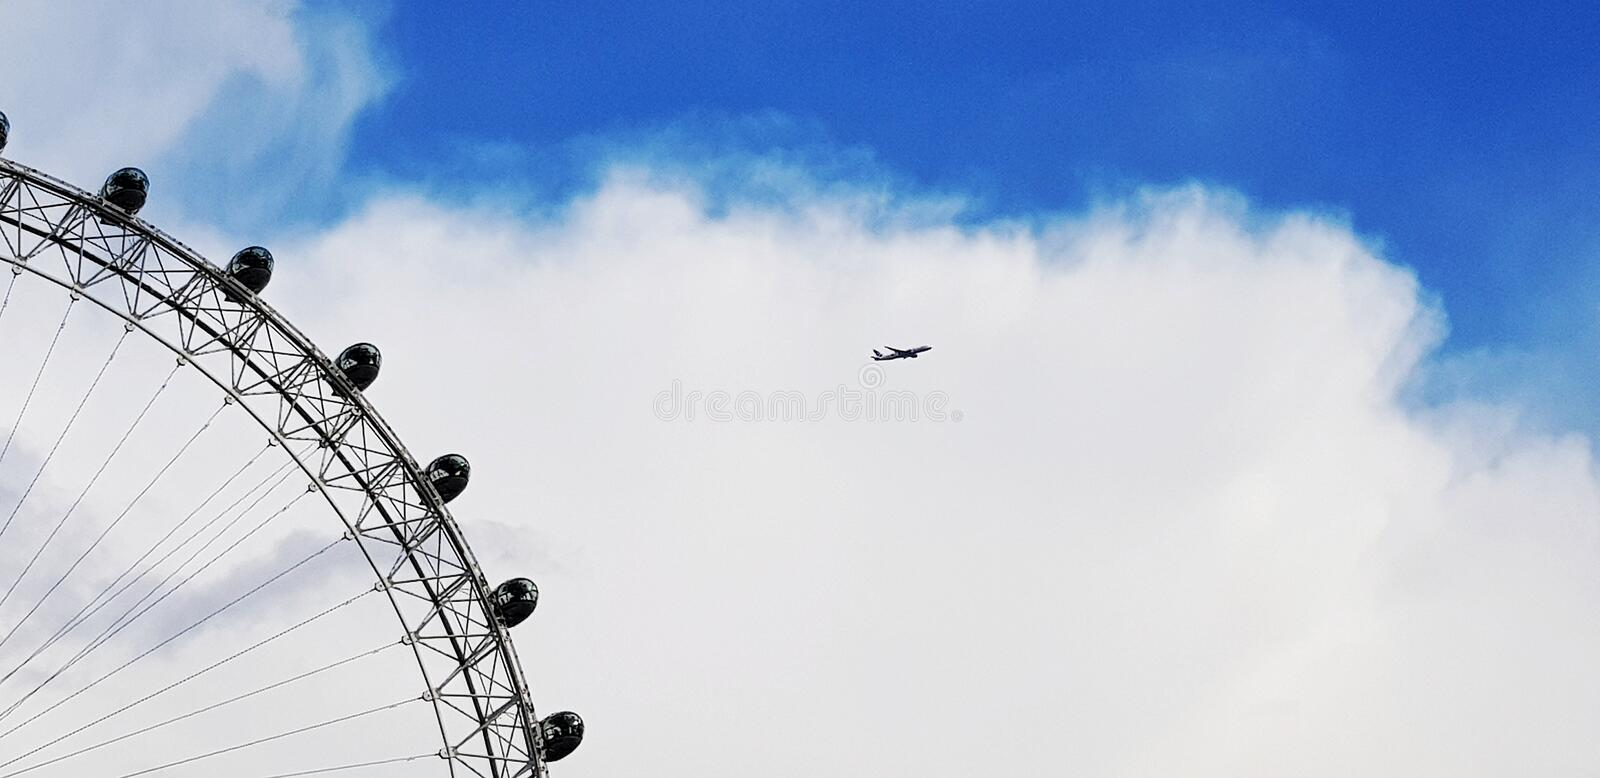 London eye. Ferris, ferriswheel, flight, plane, aeroplane, sky, clouds, blue, bluesky, nature, natural, scenic, beautiful, awesome, shot, time, timi, timing royalty free stock photography